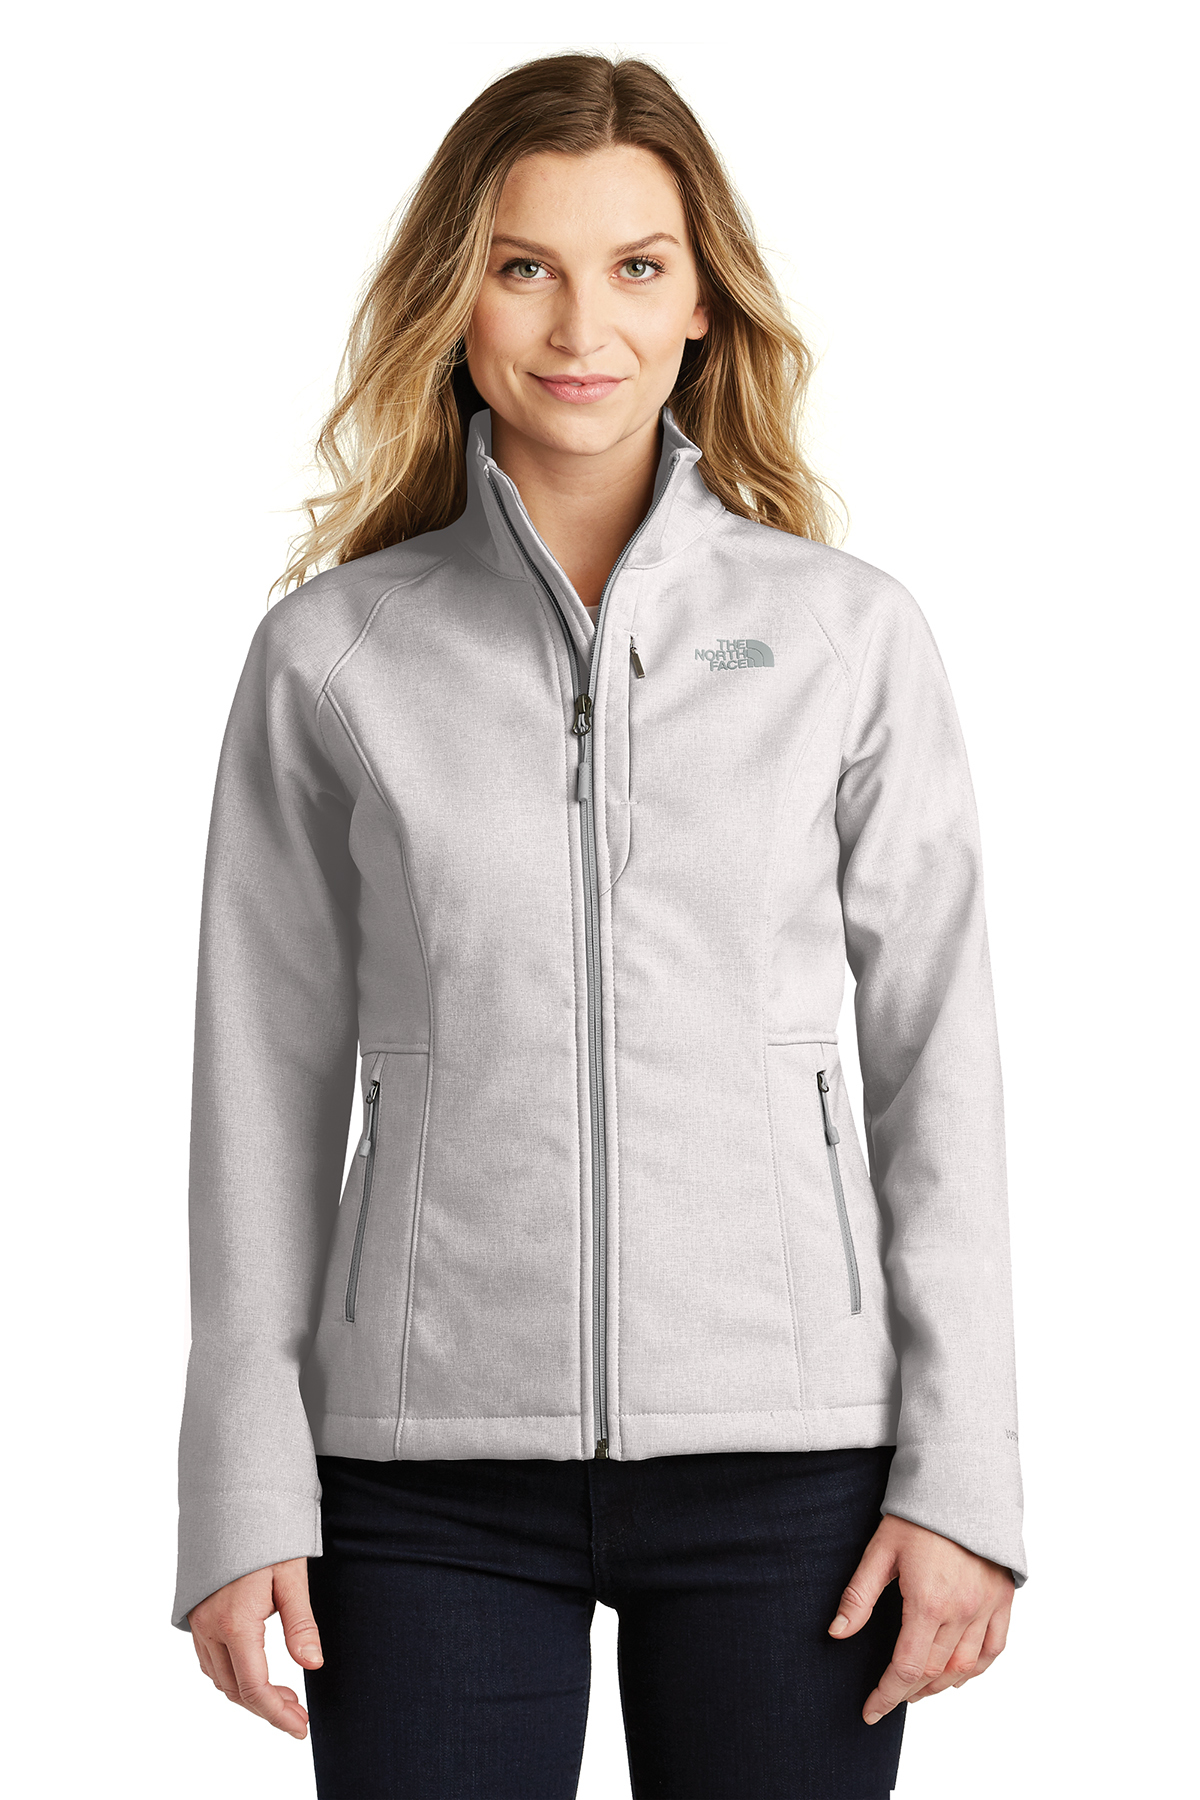 The North Face® NF0A3LGU - Ladies Apex Barrier Soft Shell Jacket